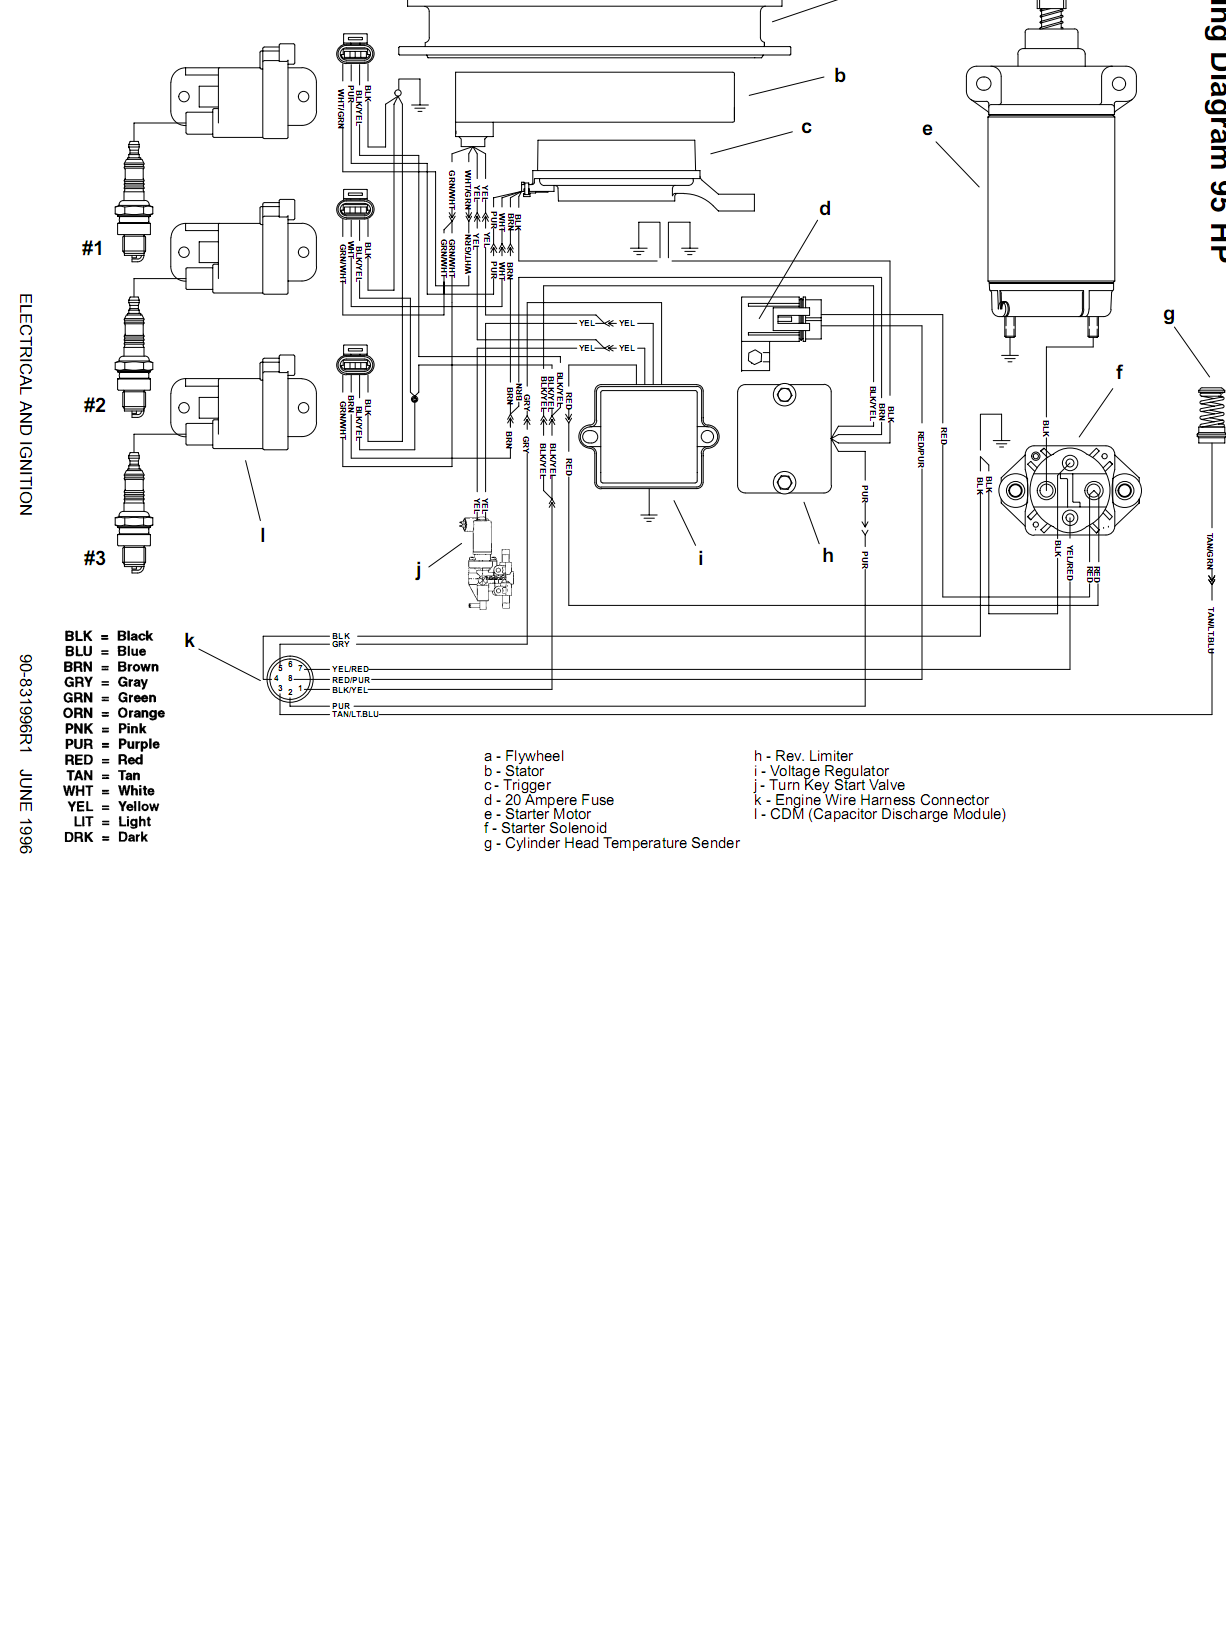 wiring diagram for jet boat the wiring diagram i have purchased a 1994 searay sea raider a 90hp sportjet wiring diagram